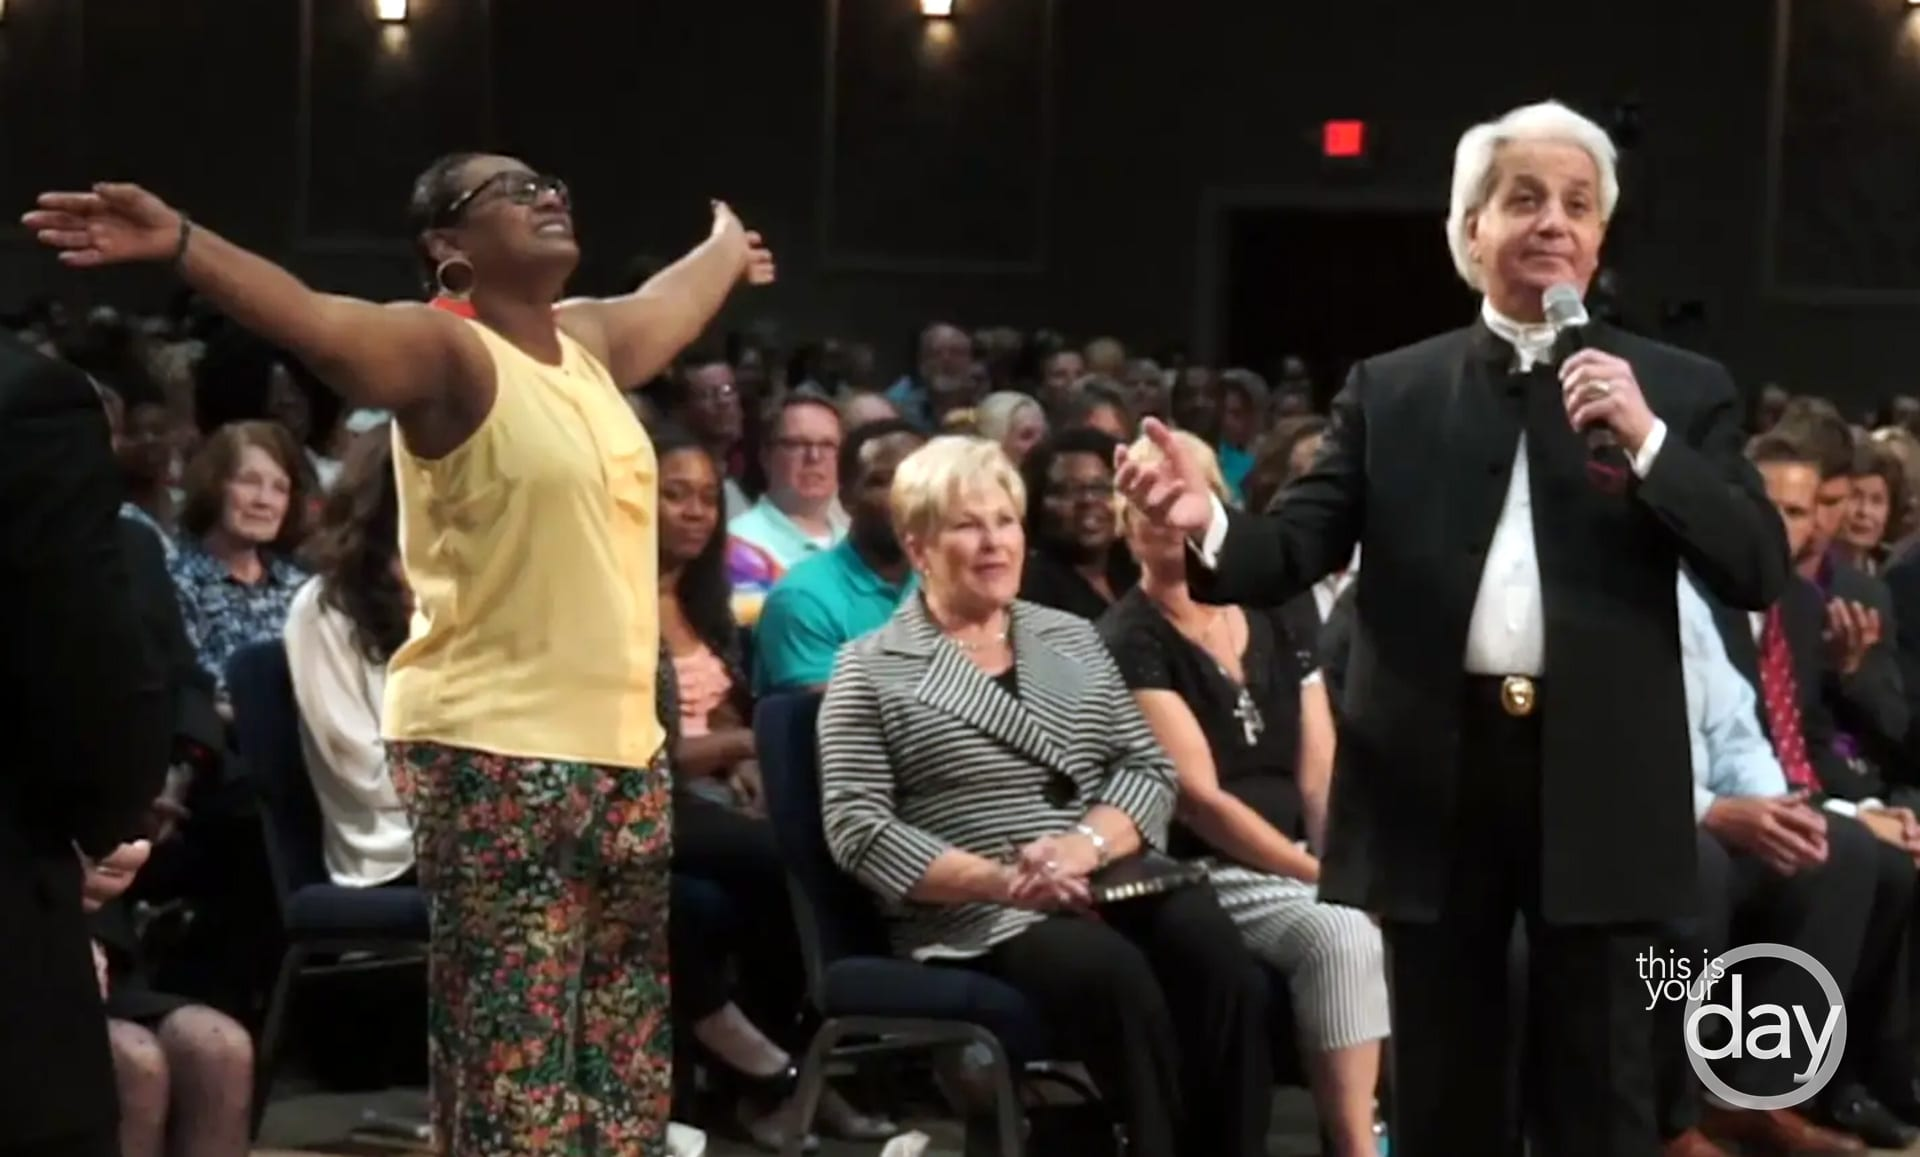 Miracles Can Happen at Any Time - This Is Your Day - Benny Hinn Ministries